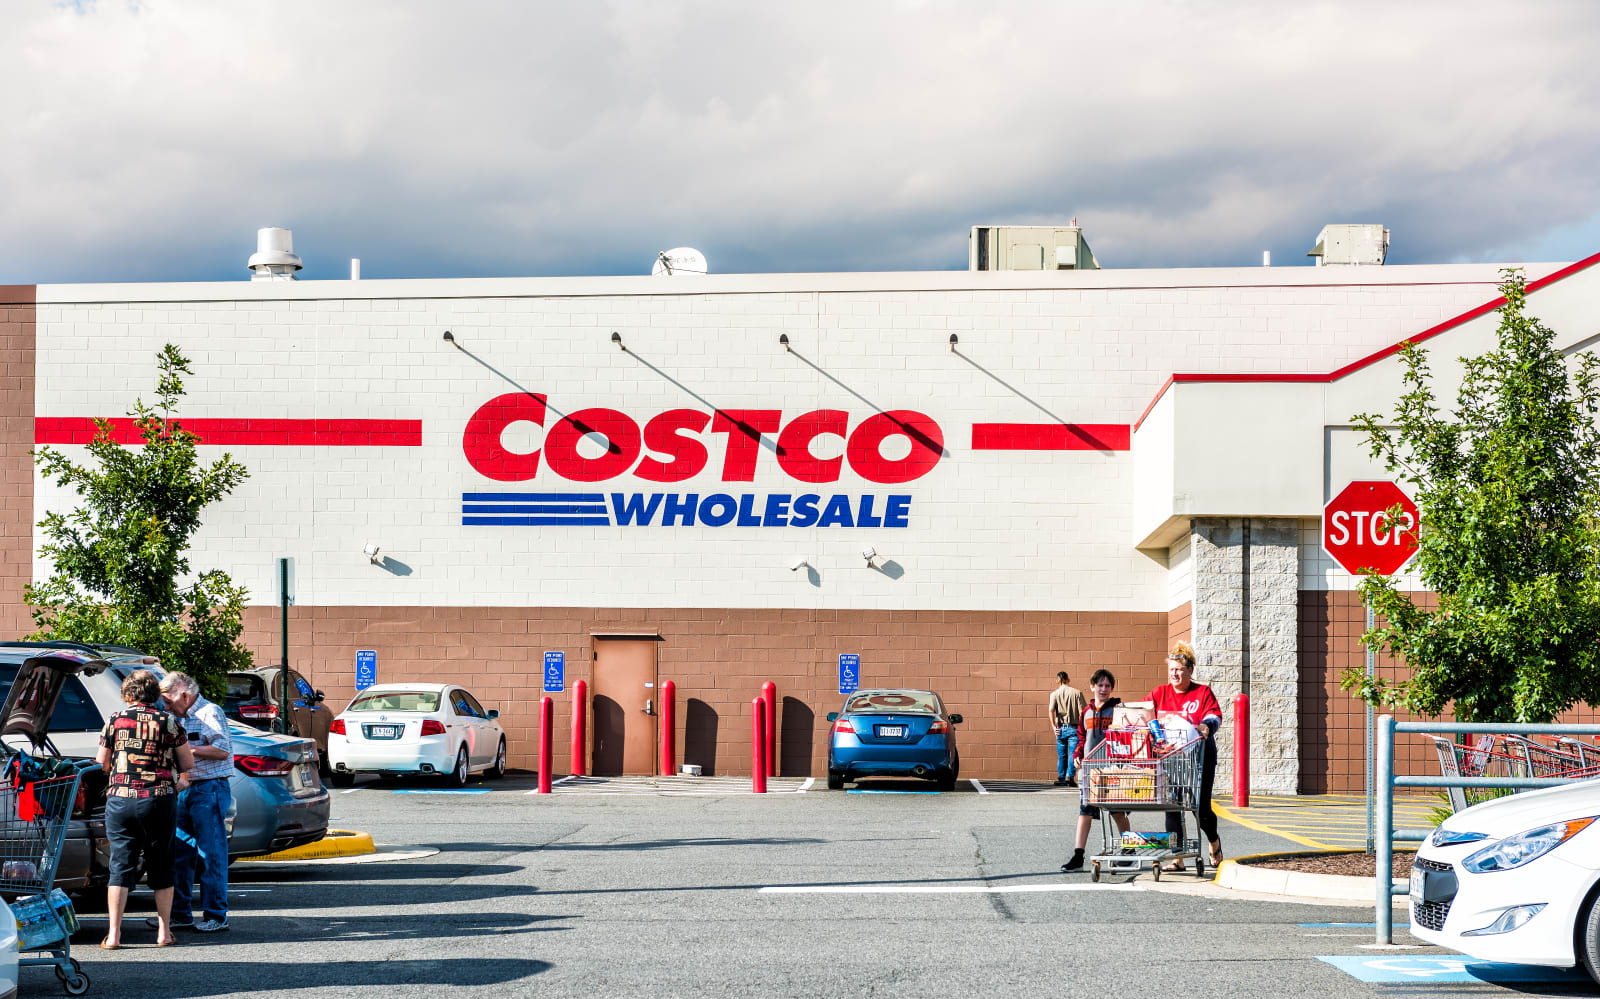 costco introduction Operating more than 740 membership warehouse stores, costco is the nation's largest wholesale club operator (ahead of wal-mart 's sam's club)primarily under the costco wholesale banner, it serves more than 90 million cardholders in 44 us states, washington, dc, and puerto rico, as well as in australia, canada, mexico, the uk, japan, south korea, taiwan, and spain.